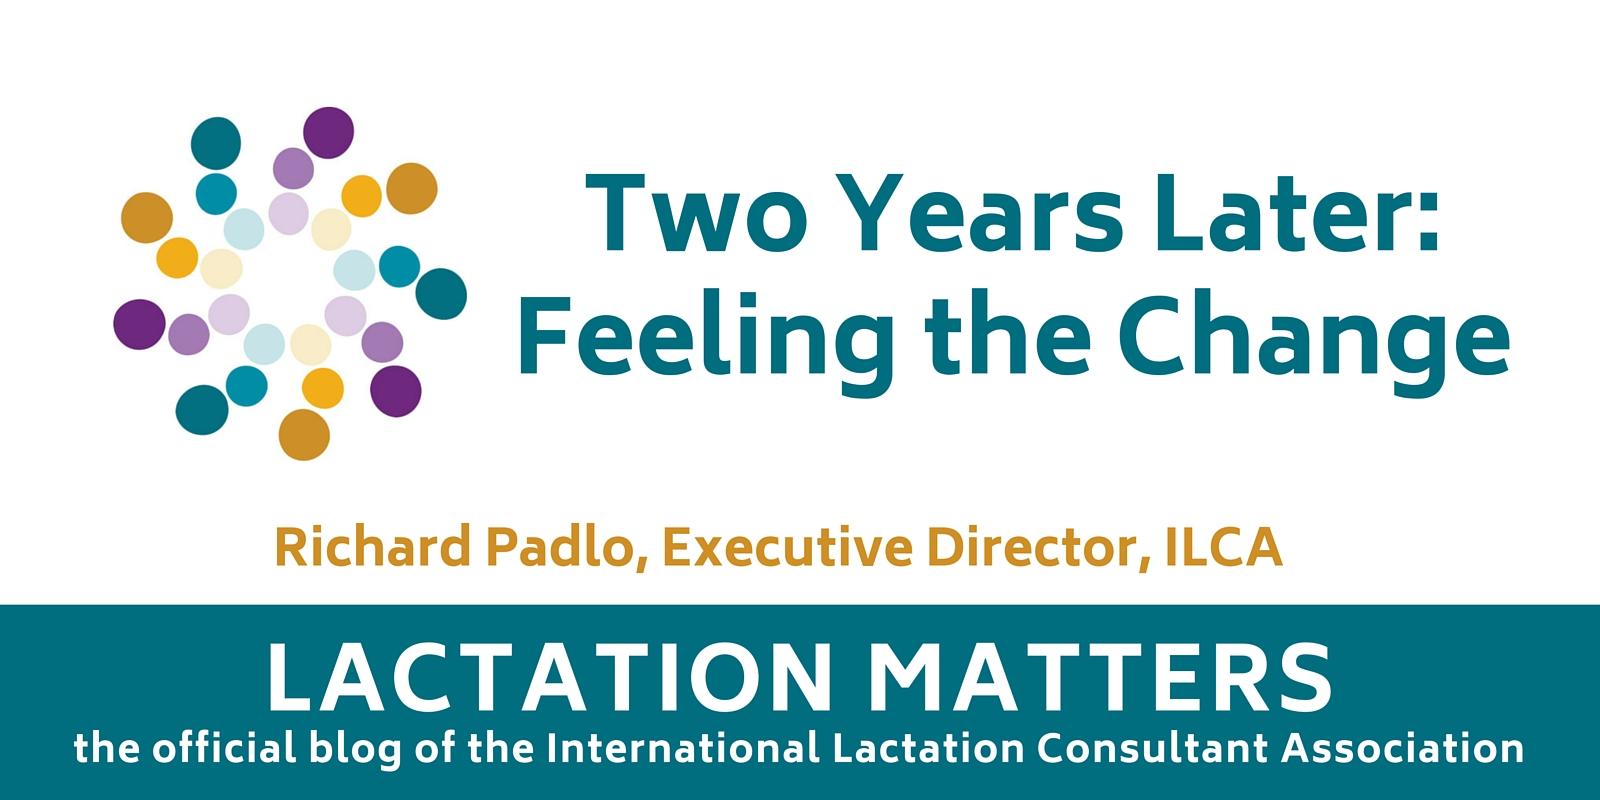 Lactation Matters Post Titles (6)